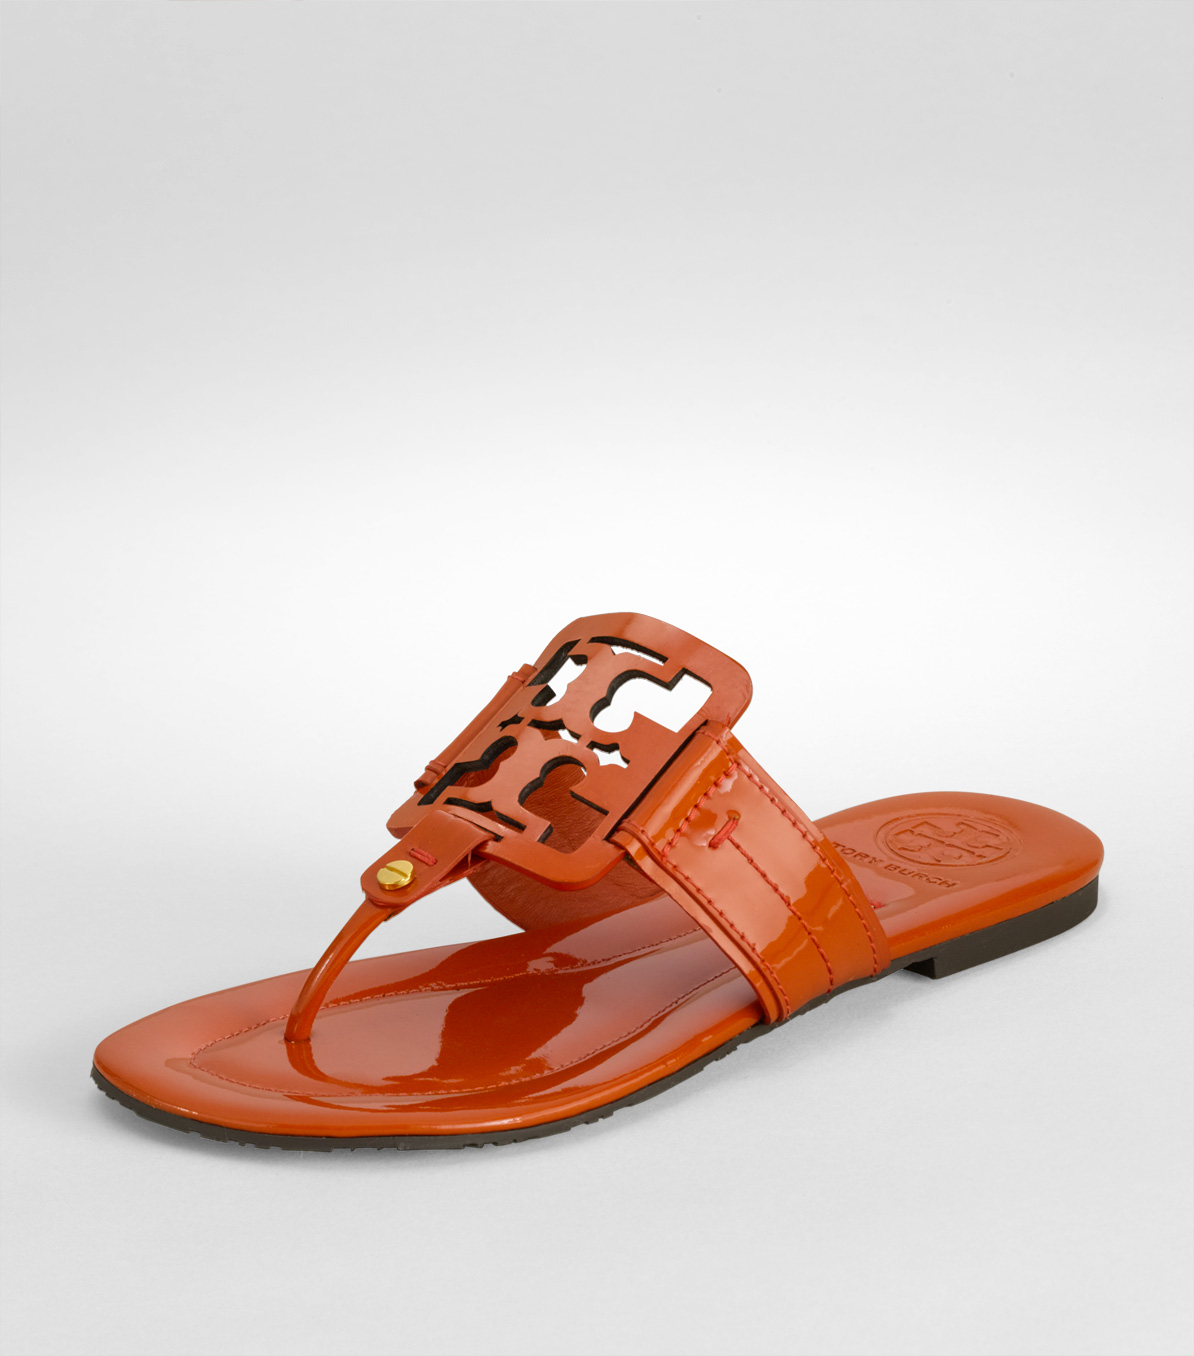 9d6fa709c3e0c Lyst - Tory Burch Square Miller Patent Leather Thong Sandals in Orange